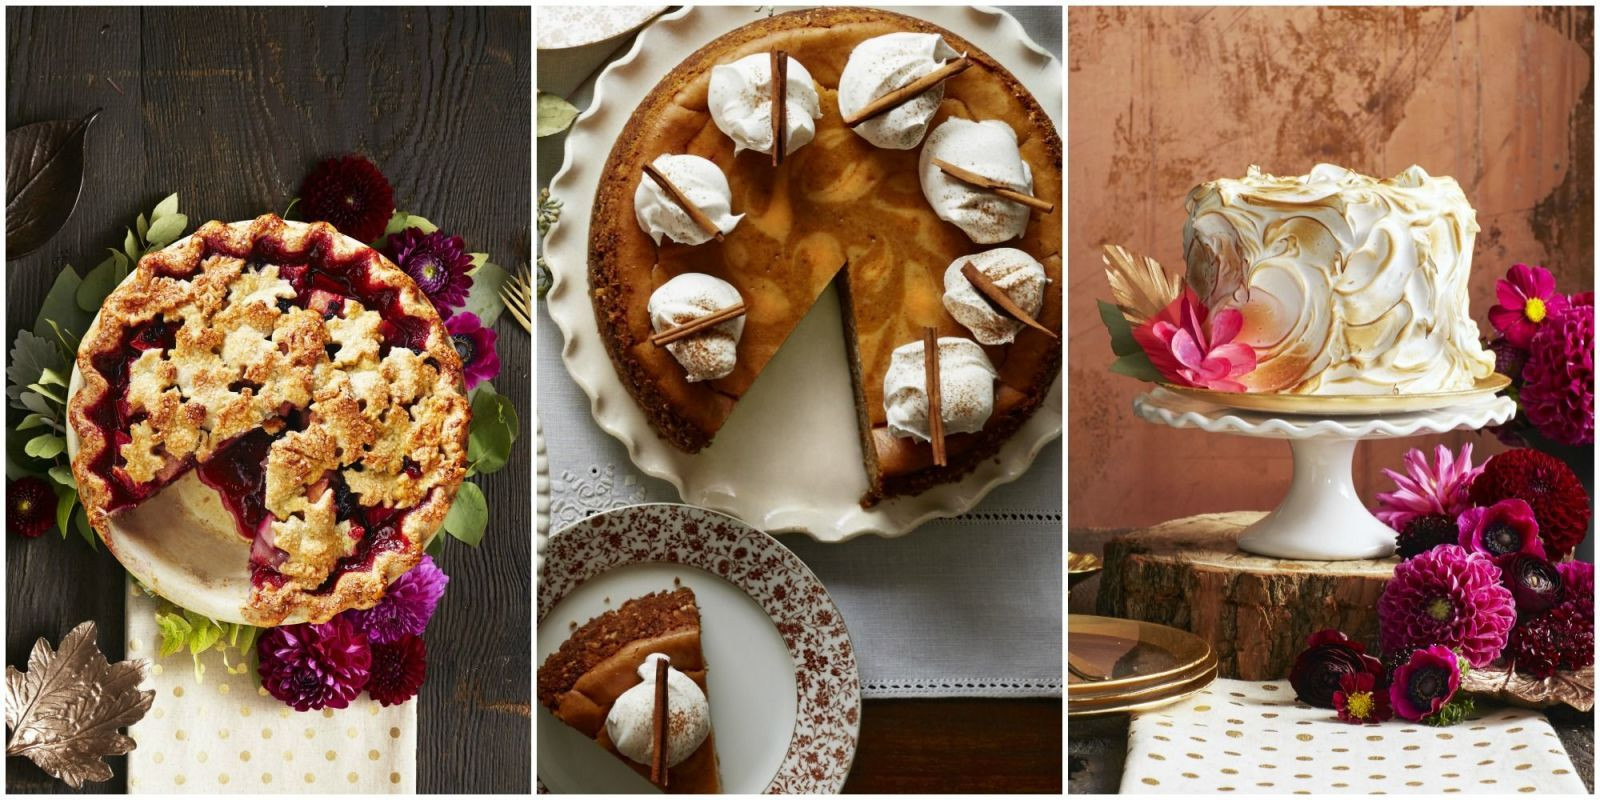 Thanksgiving Pies And Cakes  65 Absolutely Incredible Thanksgiving Desserts